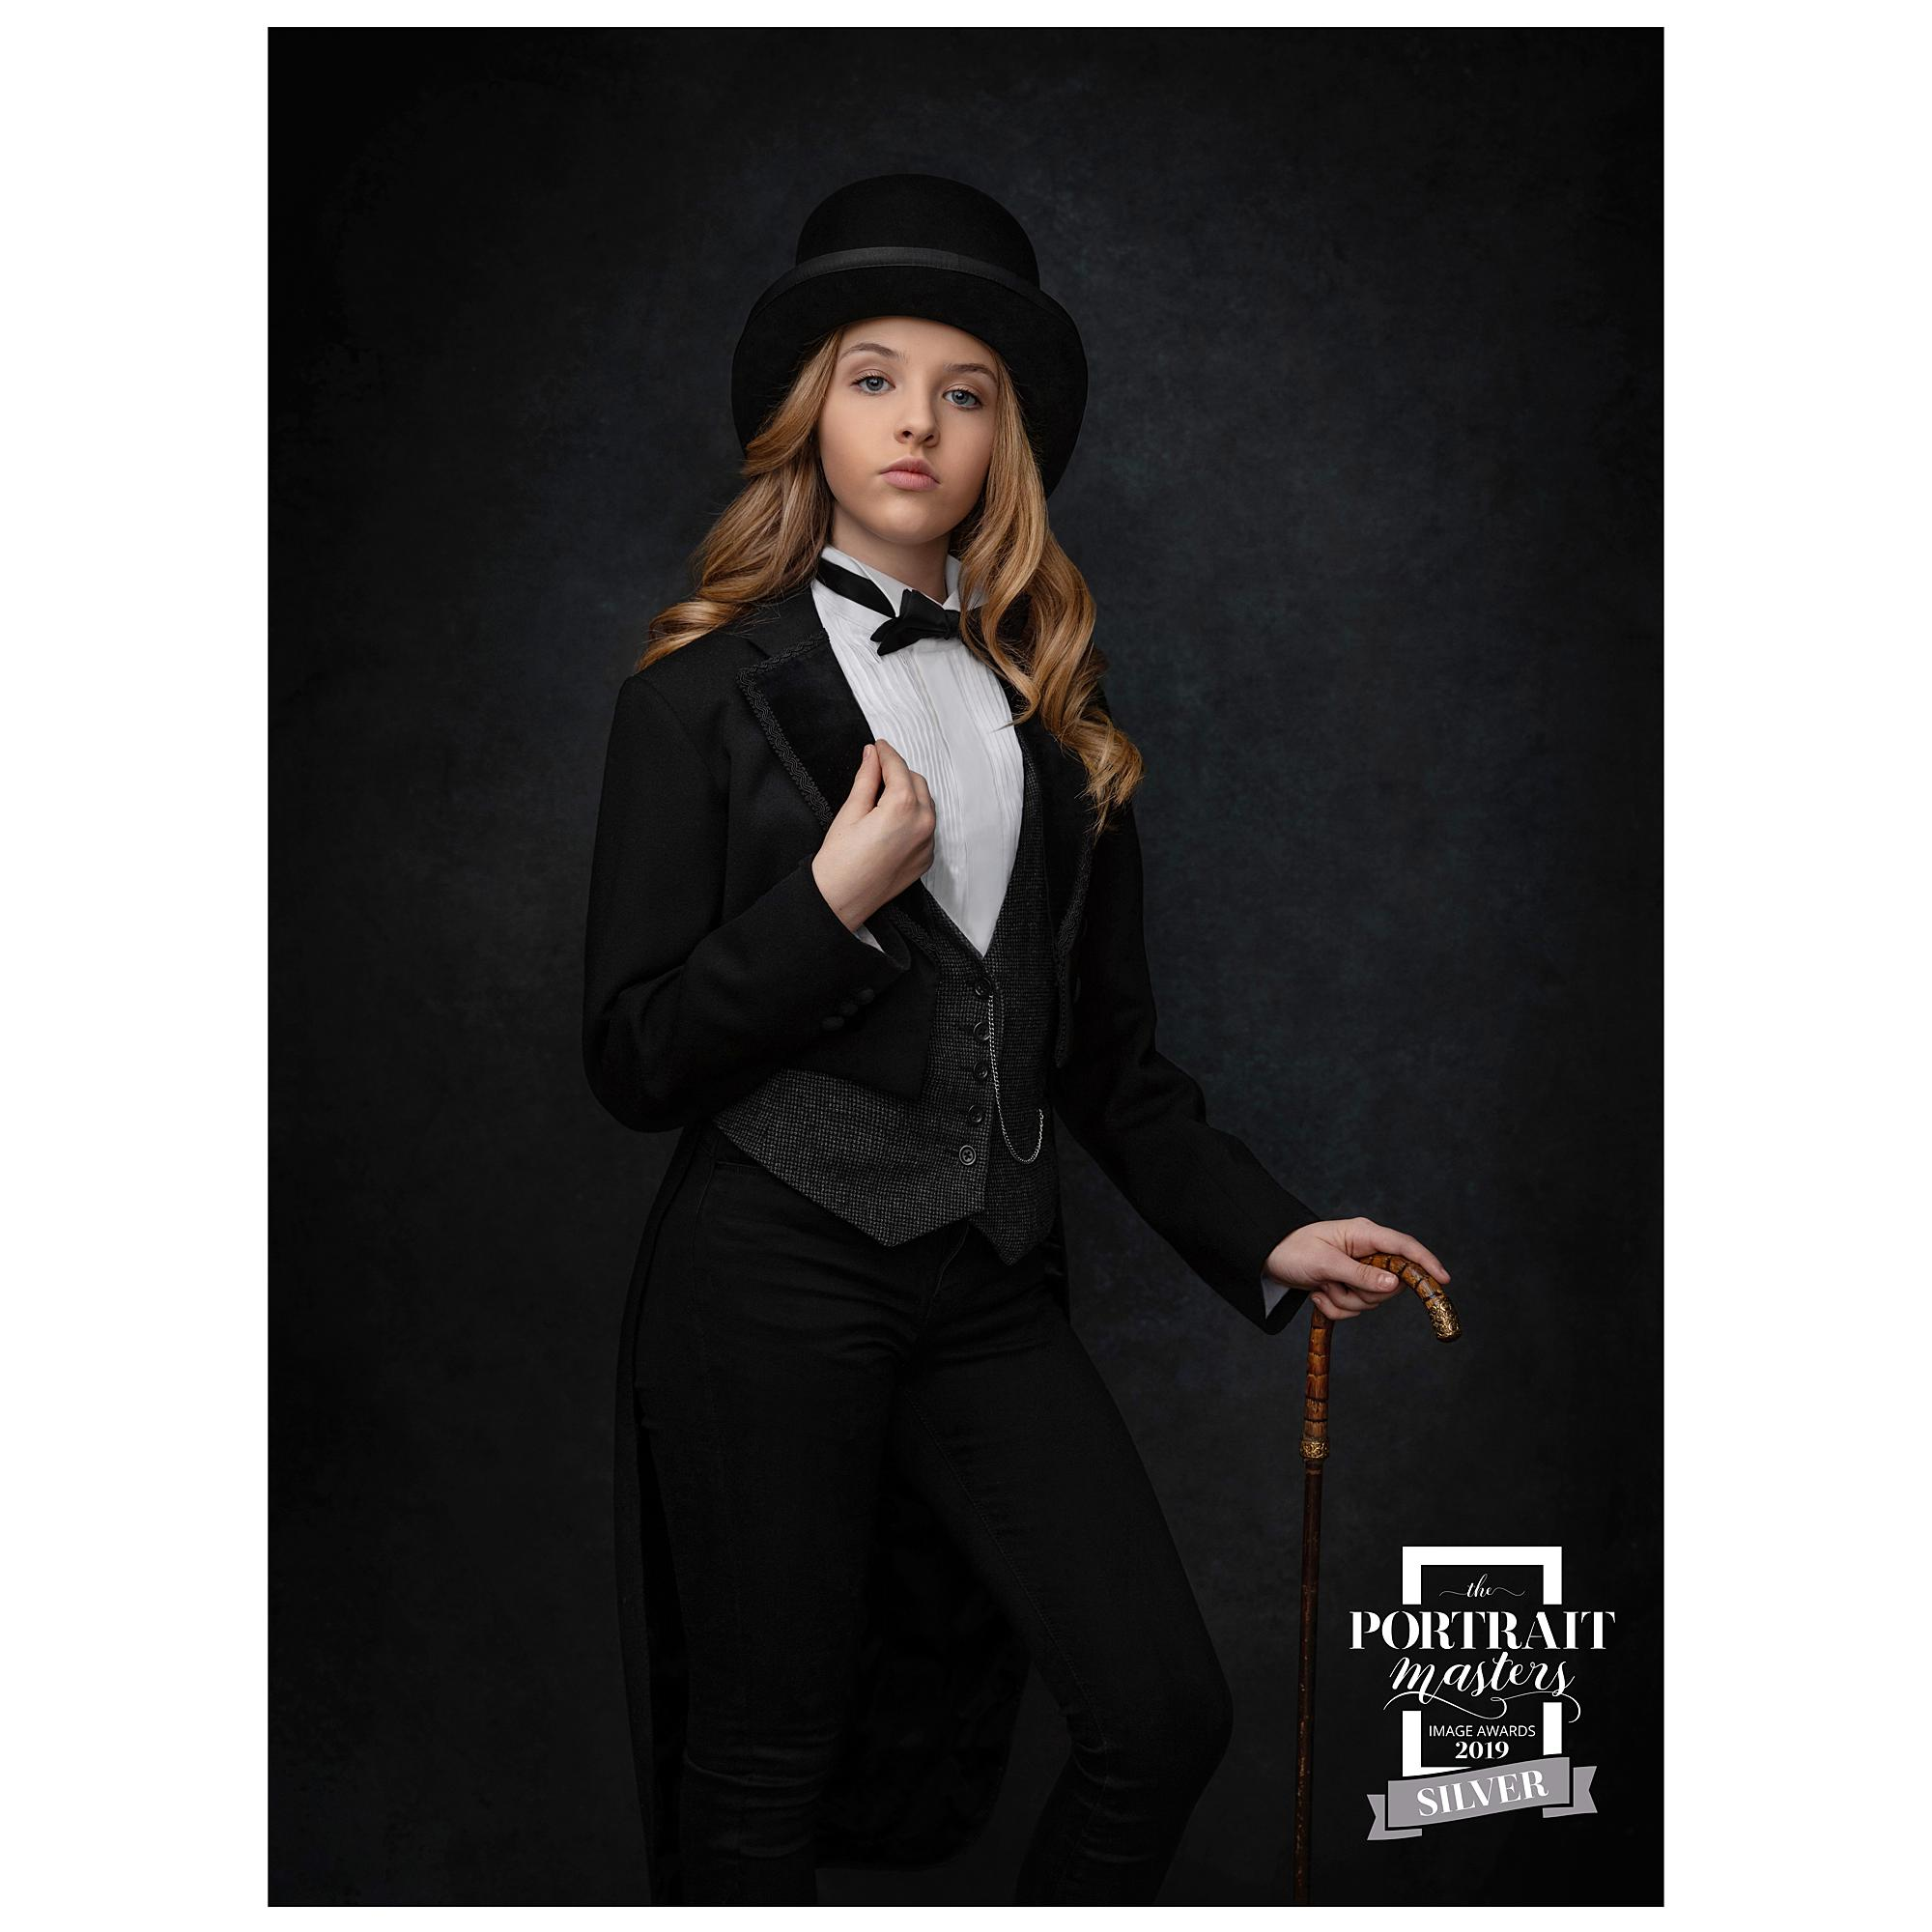 Portrait of a girl with a Black Top hat and Tails wins a silver award at the Portrait Masters